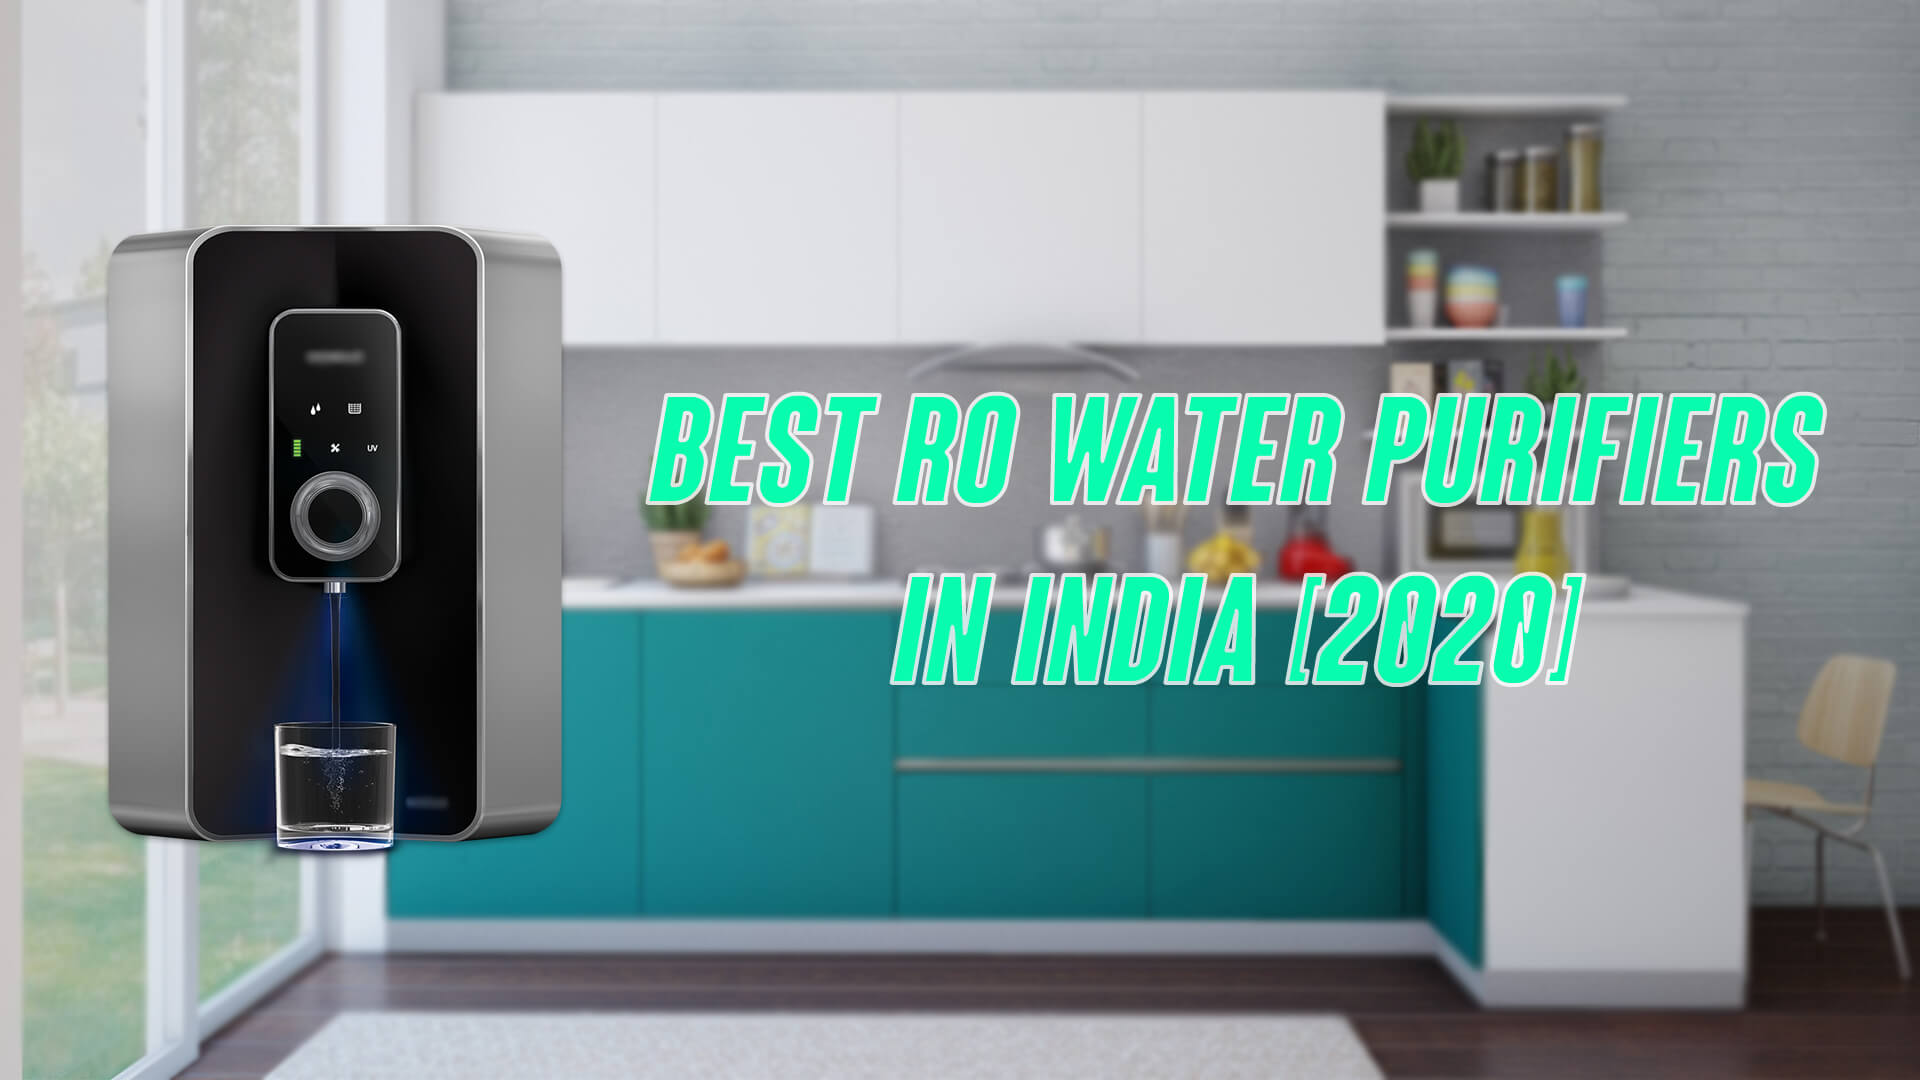 Best RO Water Purifiers In India [2020]: Top Choices From Aquaguard, Kent, Pureit, & More